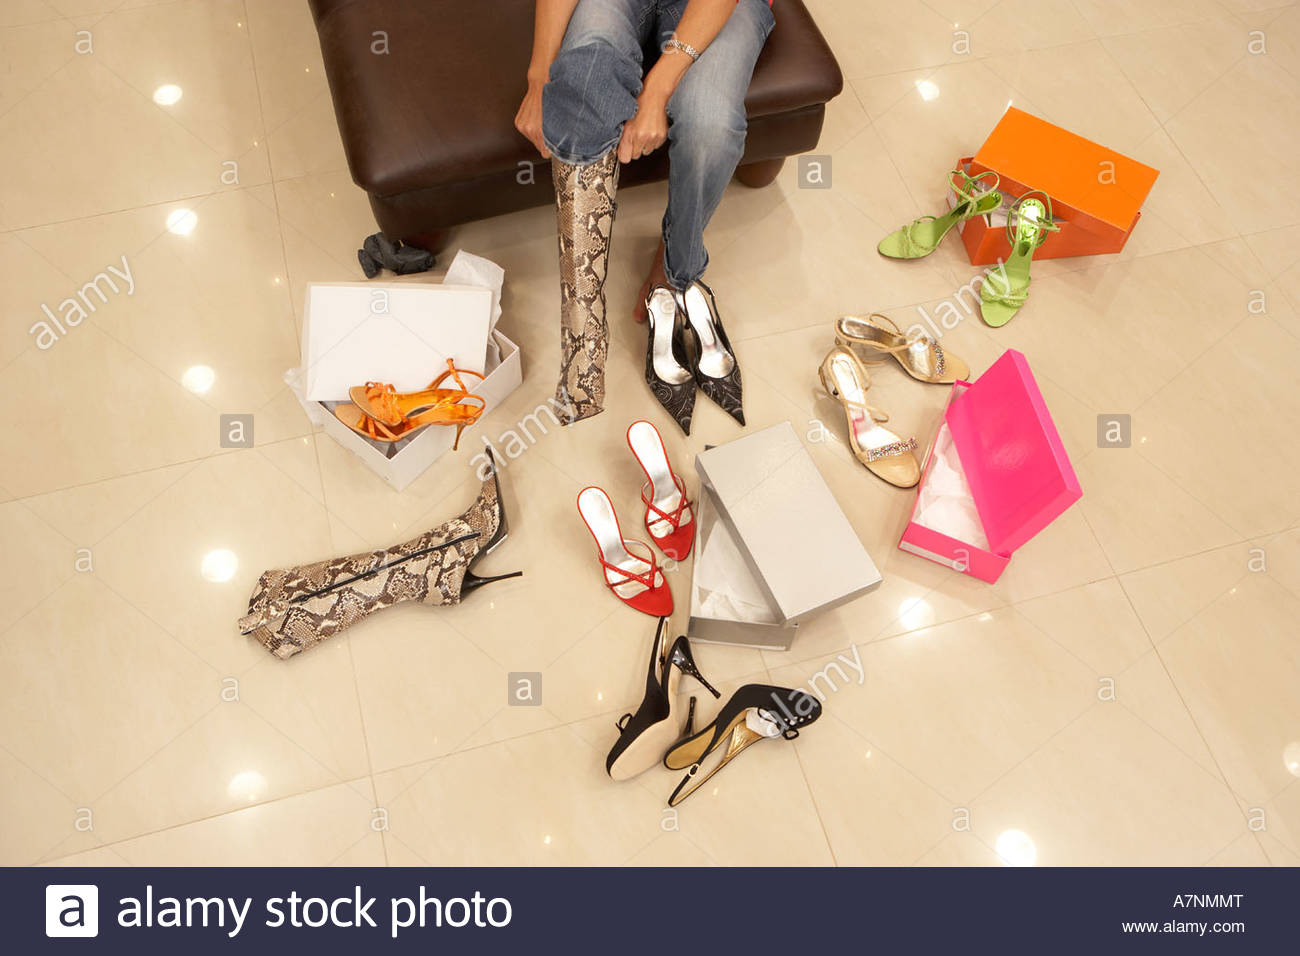 Woman trying on different pairs of high heels and boots in shoe shop low section elevated view - Stock Image